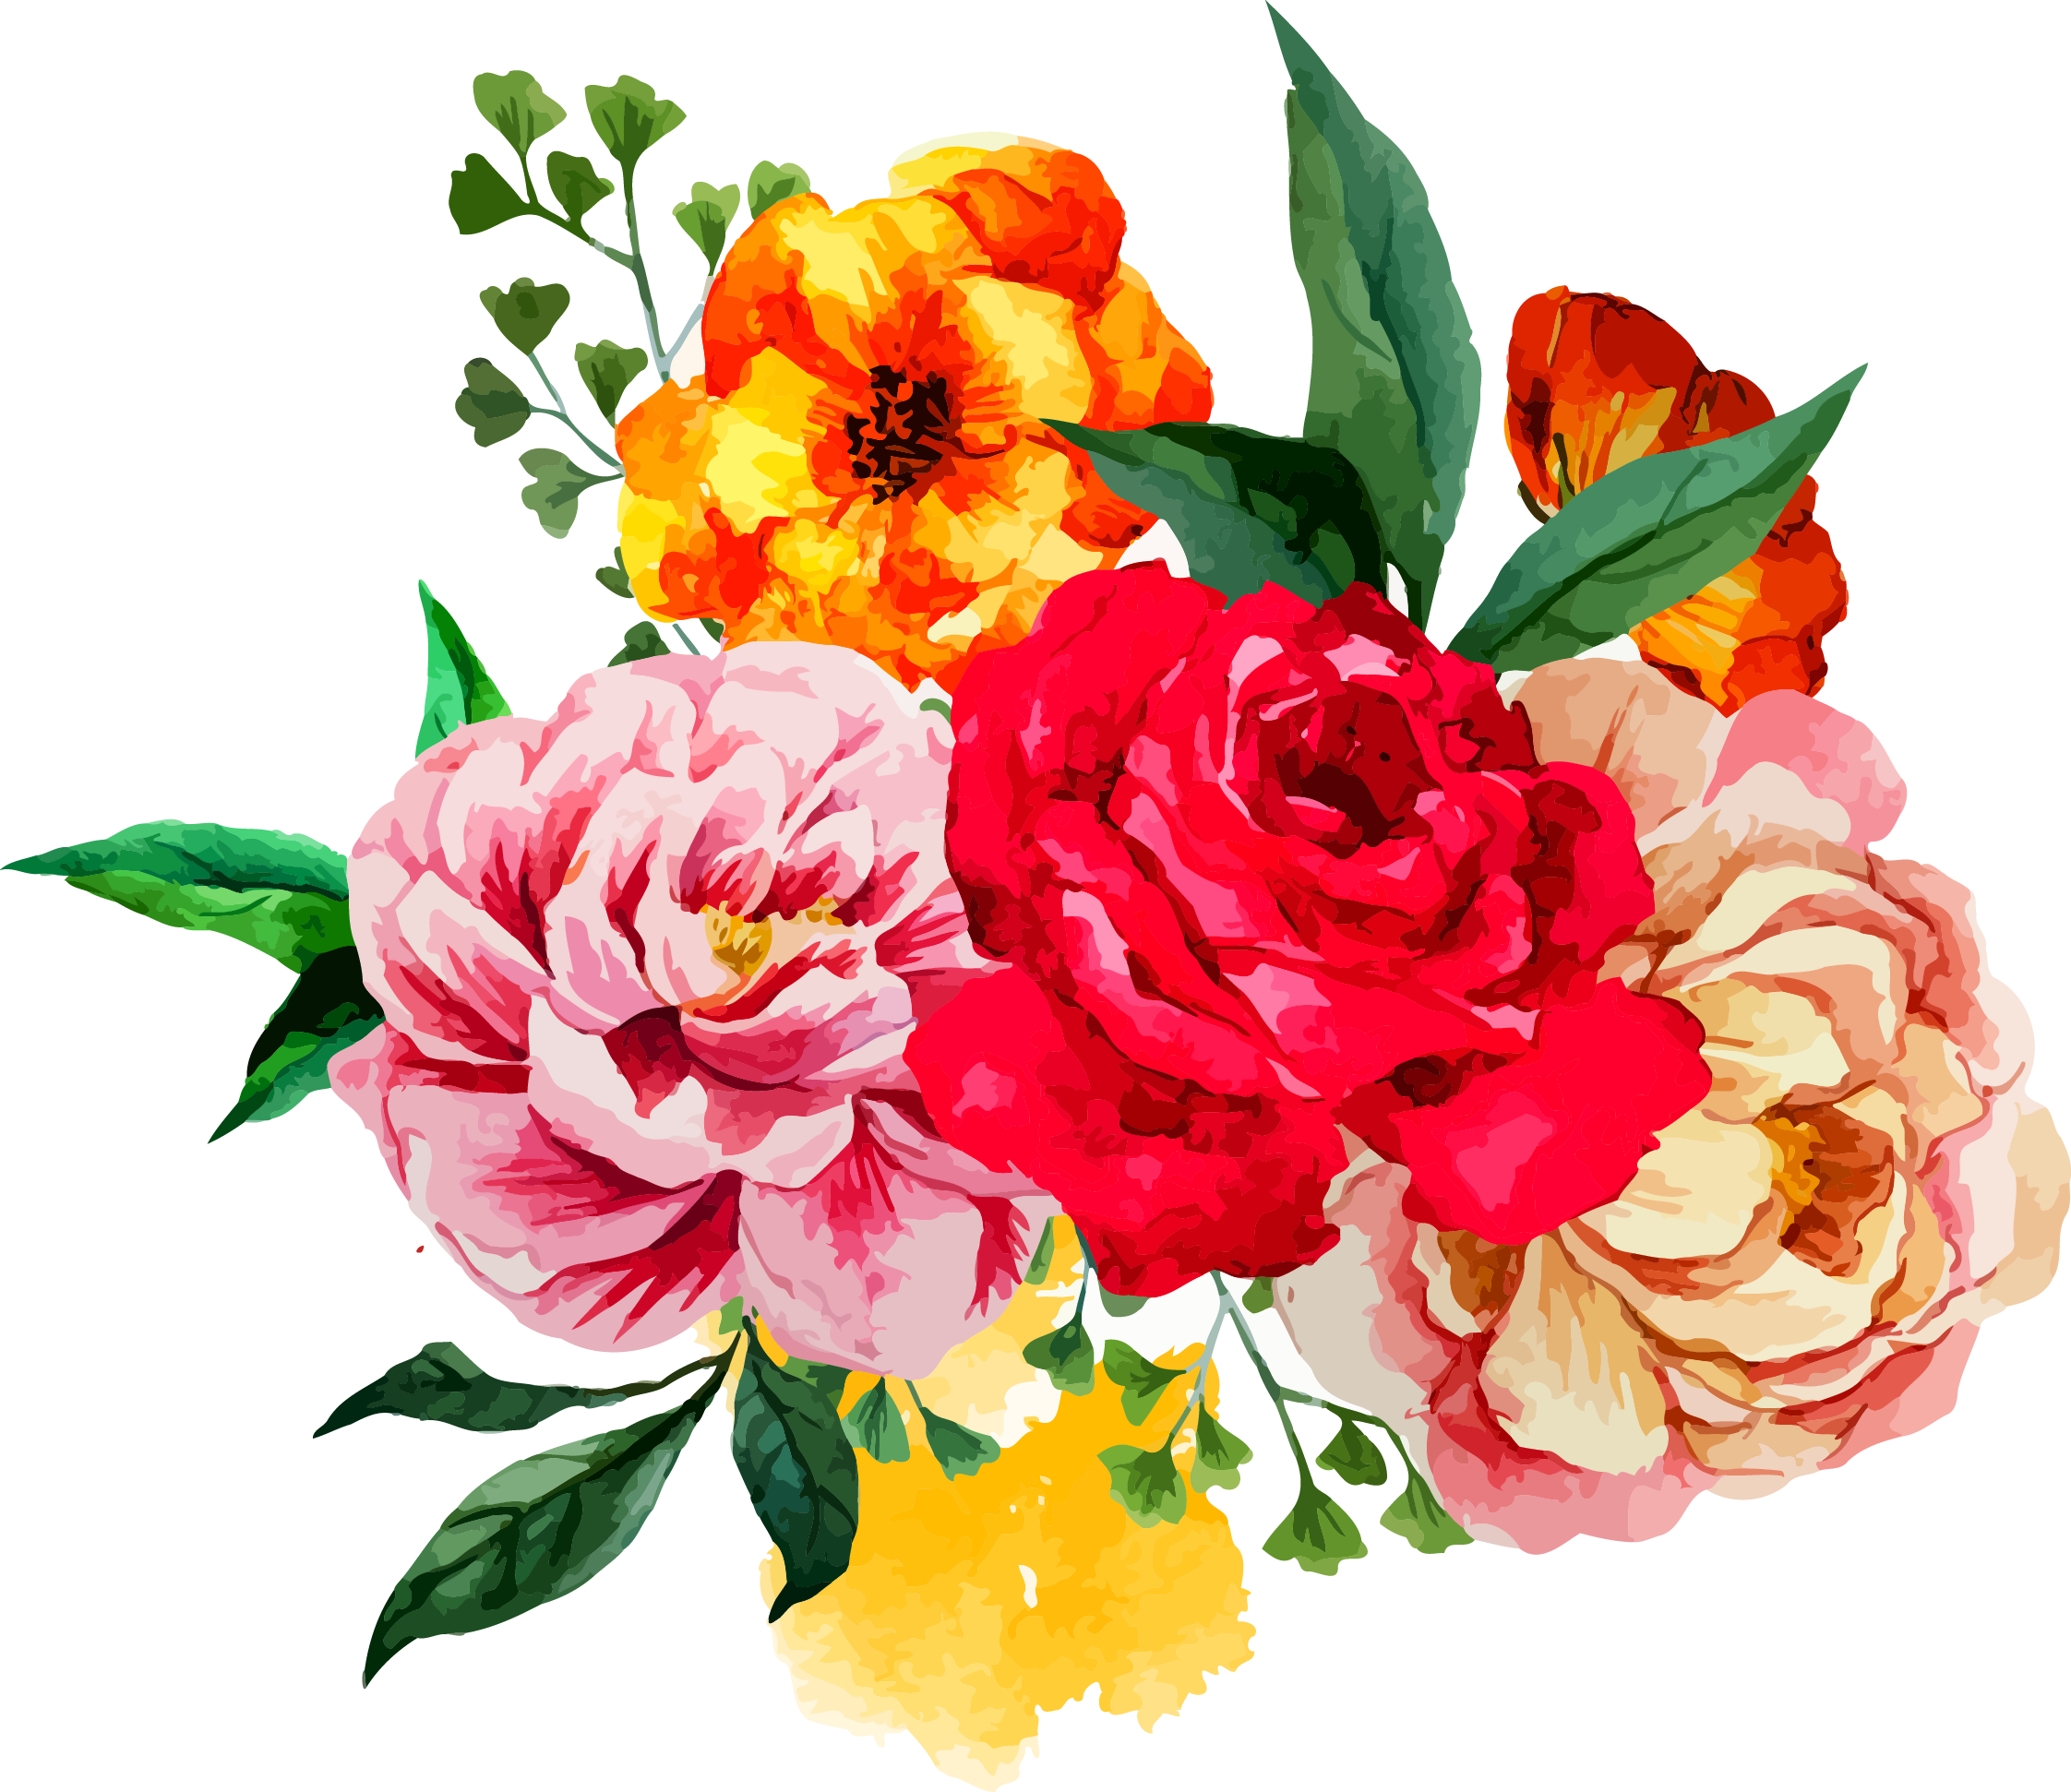 Clipart of flower bouquets image royalty free download Flower bouquet Watercolor painting Clip art - Peony 2244*1942 ... image royalty free download